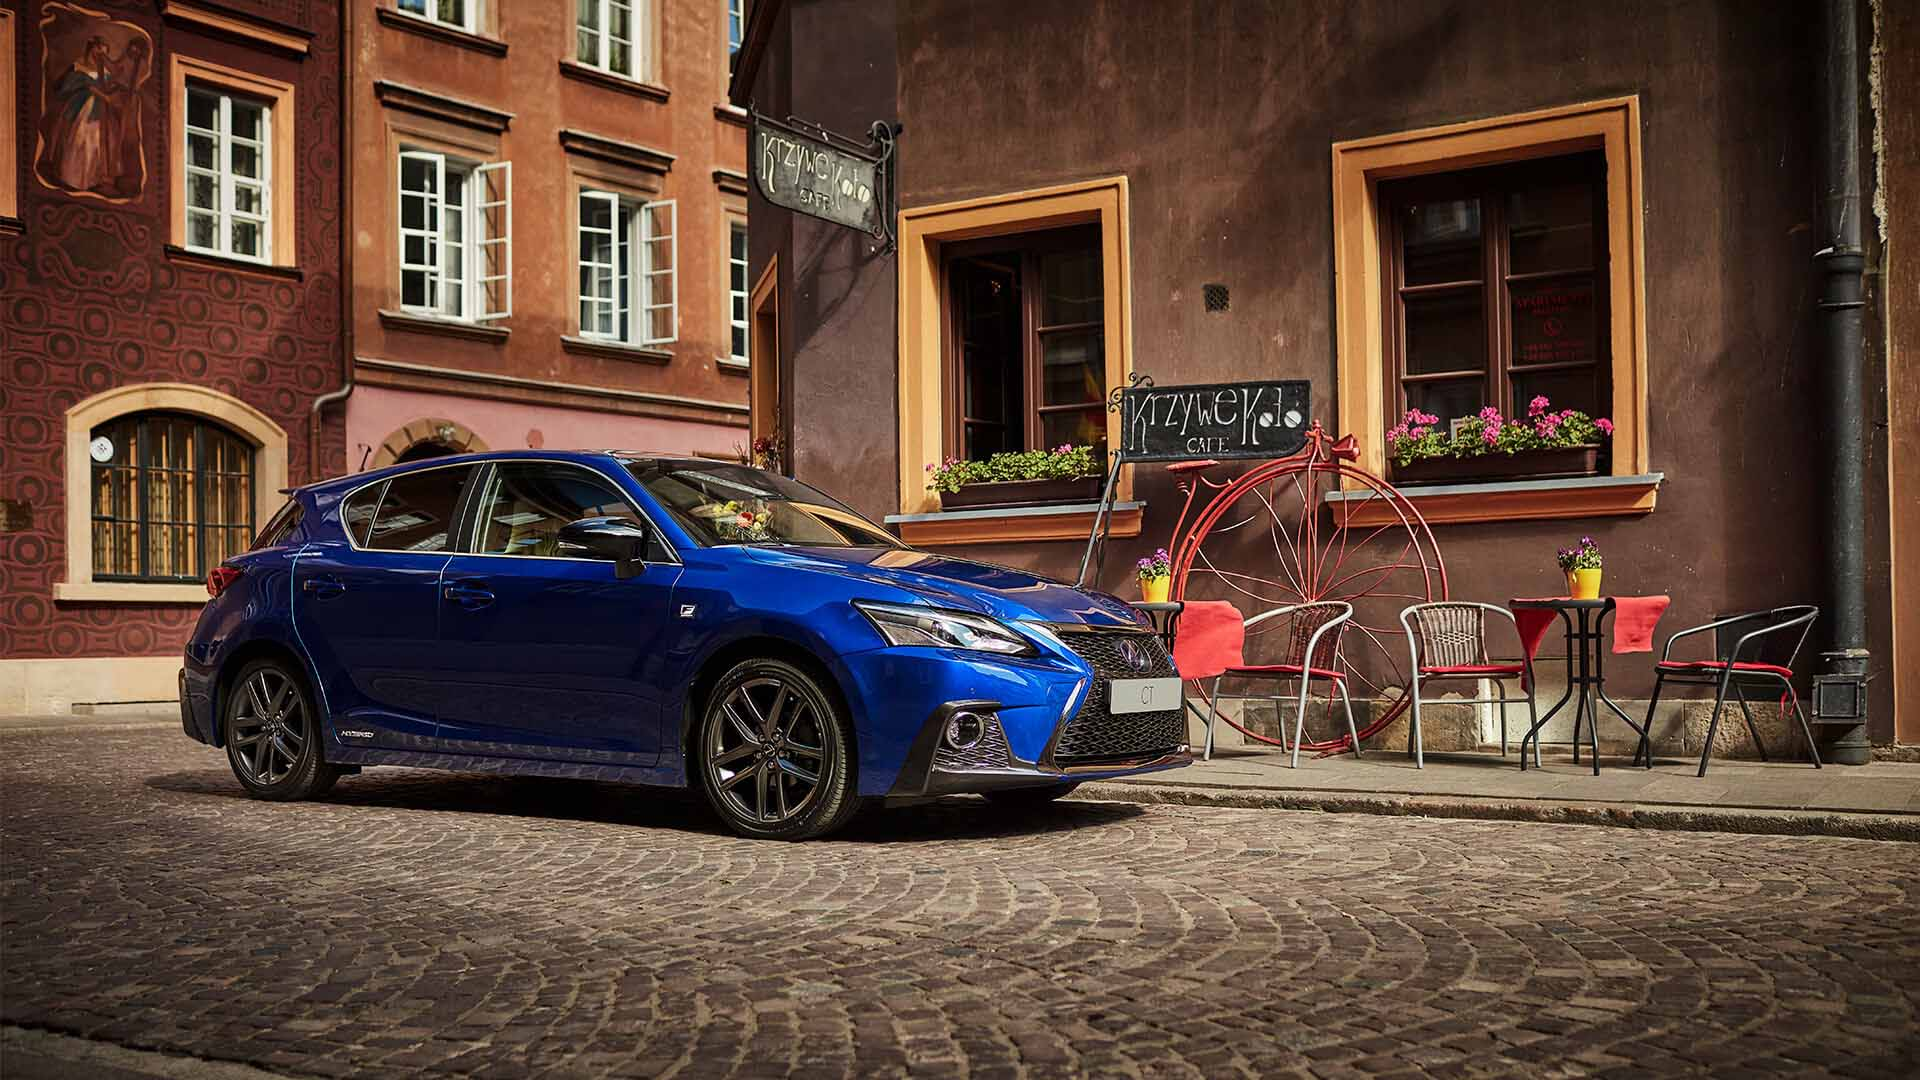 2018 lexus ct 200h my18 gallery 035 exterior